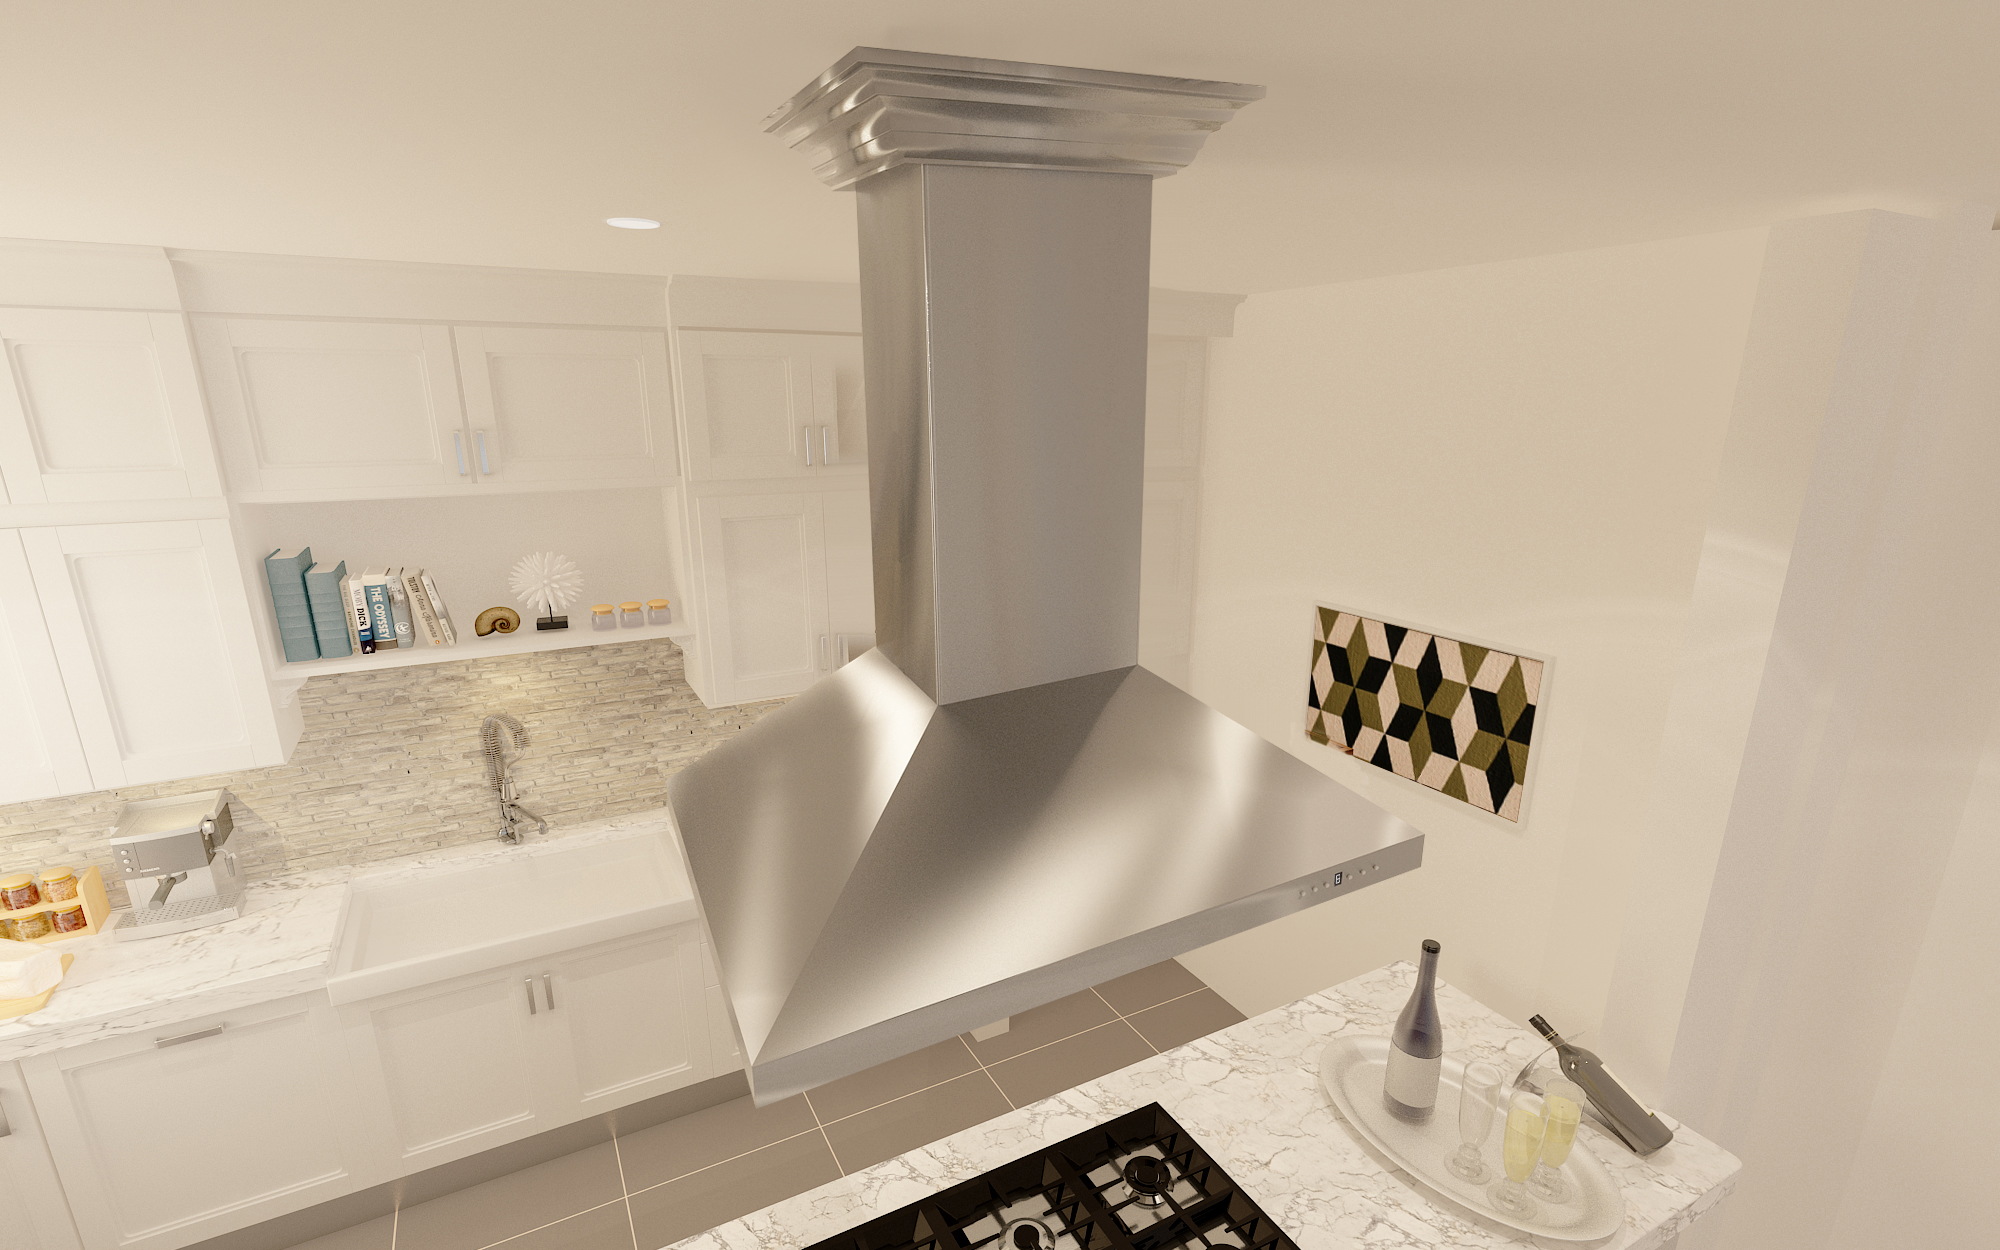 zline-stainless-steel-island-range-hood-8KL3iS-kitchen-1.jpg